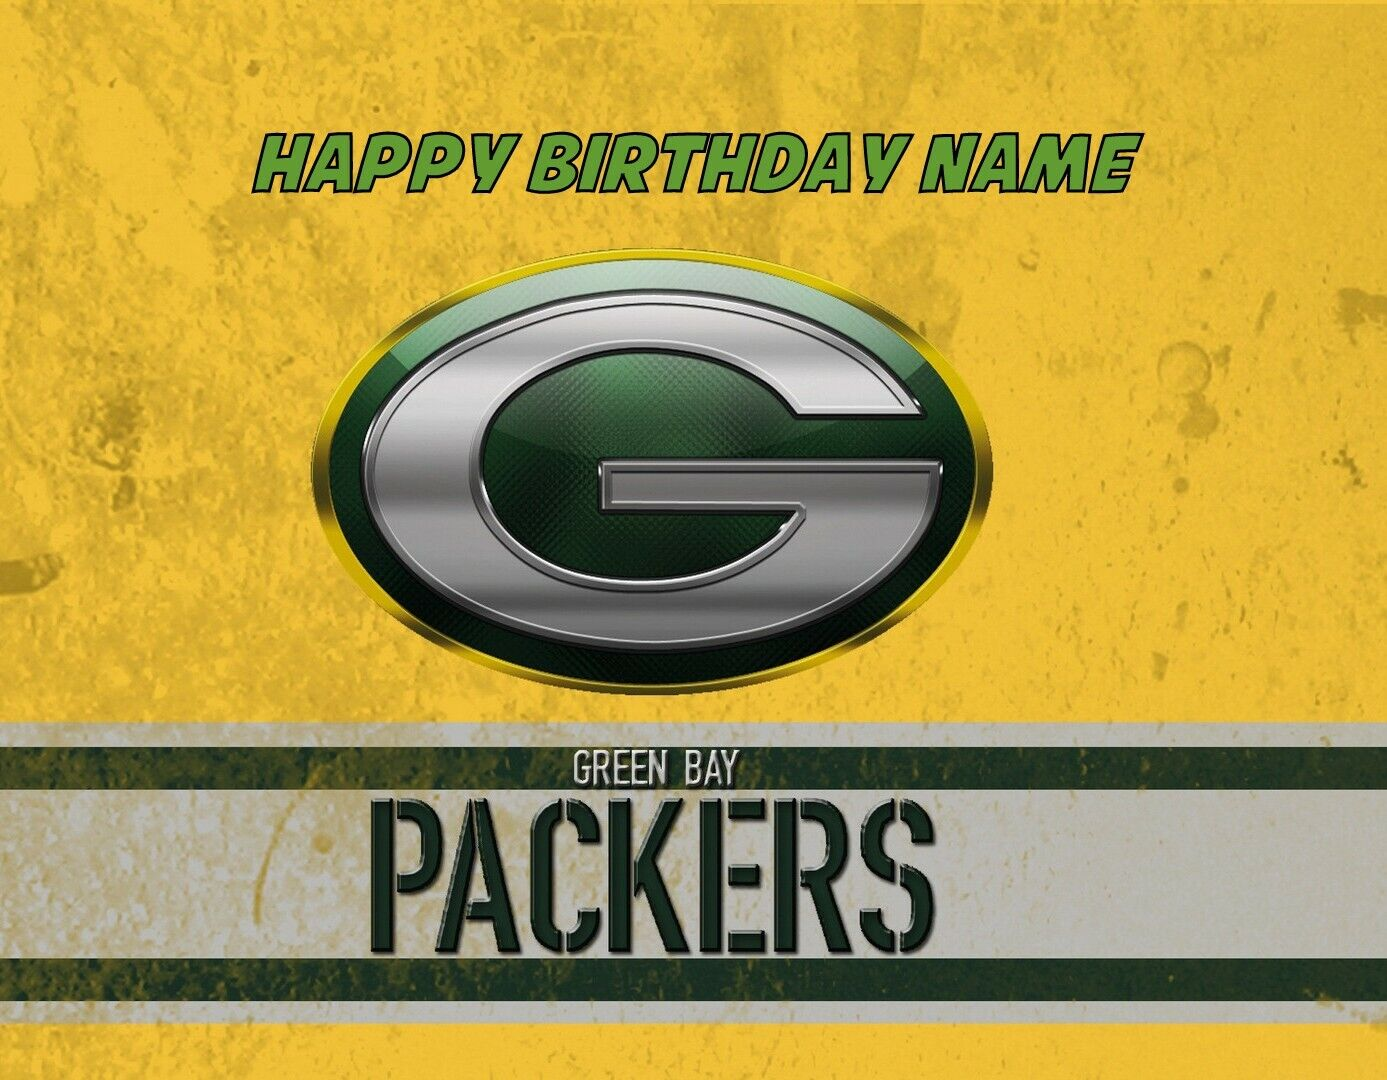 Nfl Green Bay Packers Edible Cake Image Topper By A Birthday Place For Sale Online Ebay